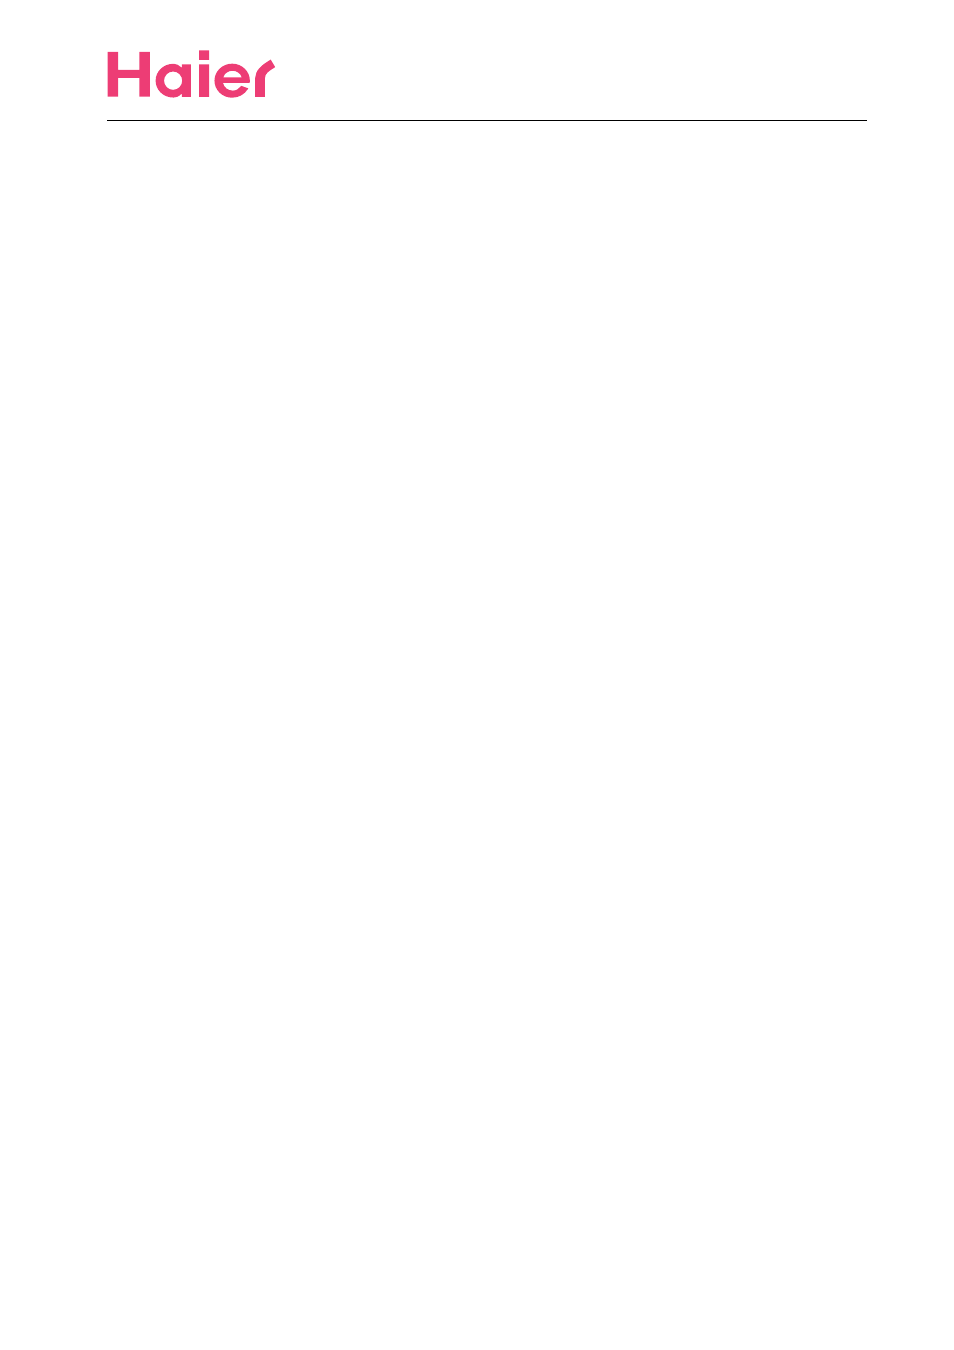 medium resolution of circuit and wiring diagram haier hd456 user manual page 14 18